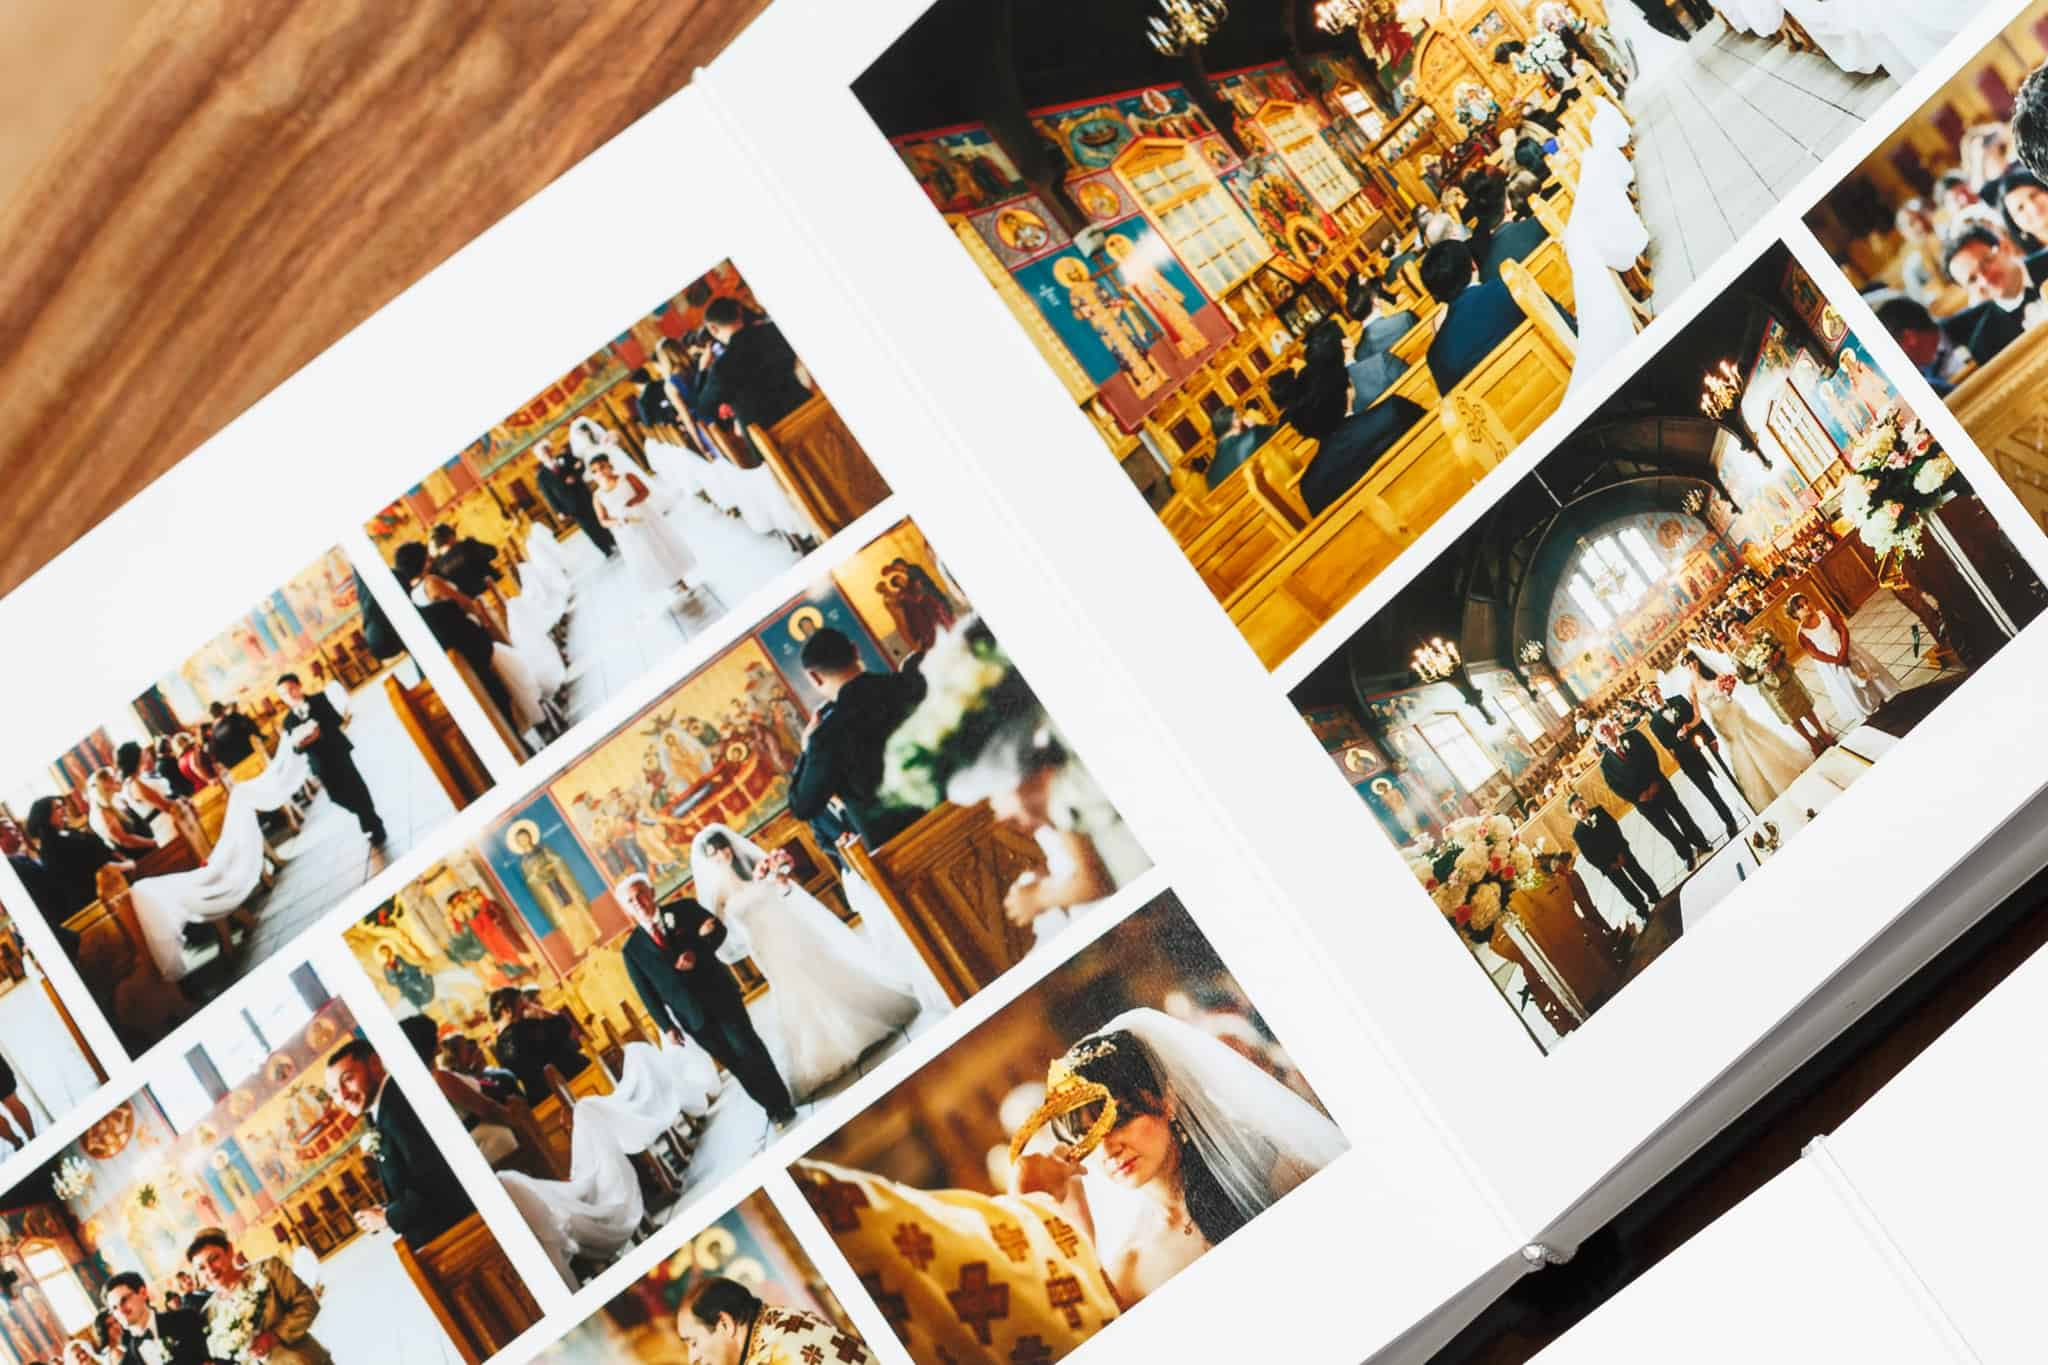 flushmount wedding photo album on wood surface